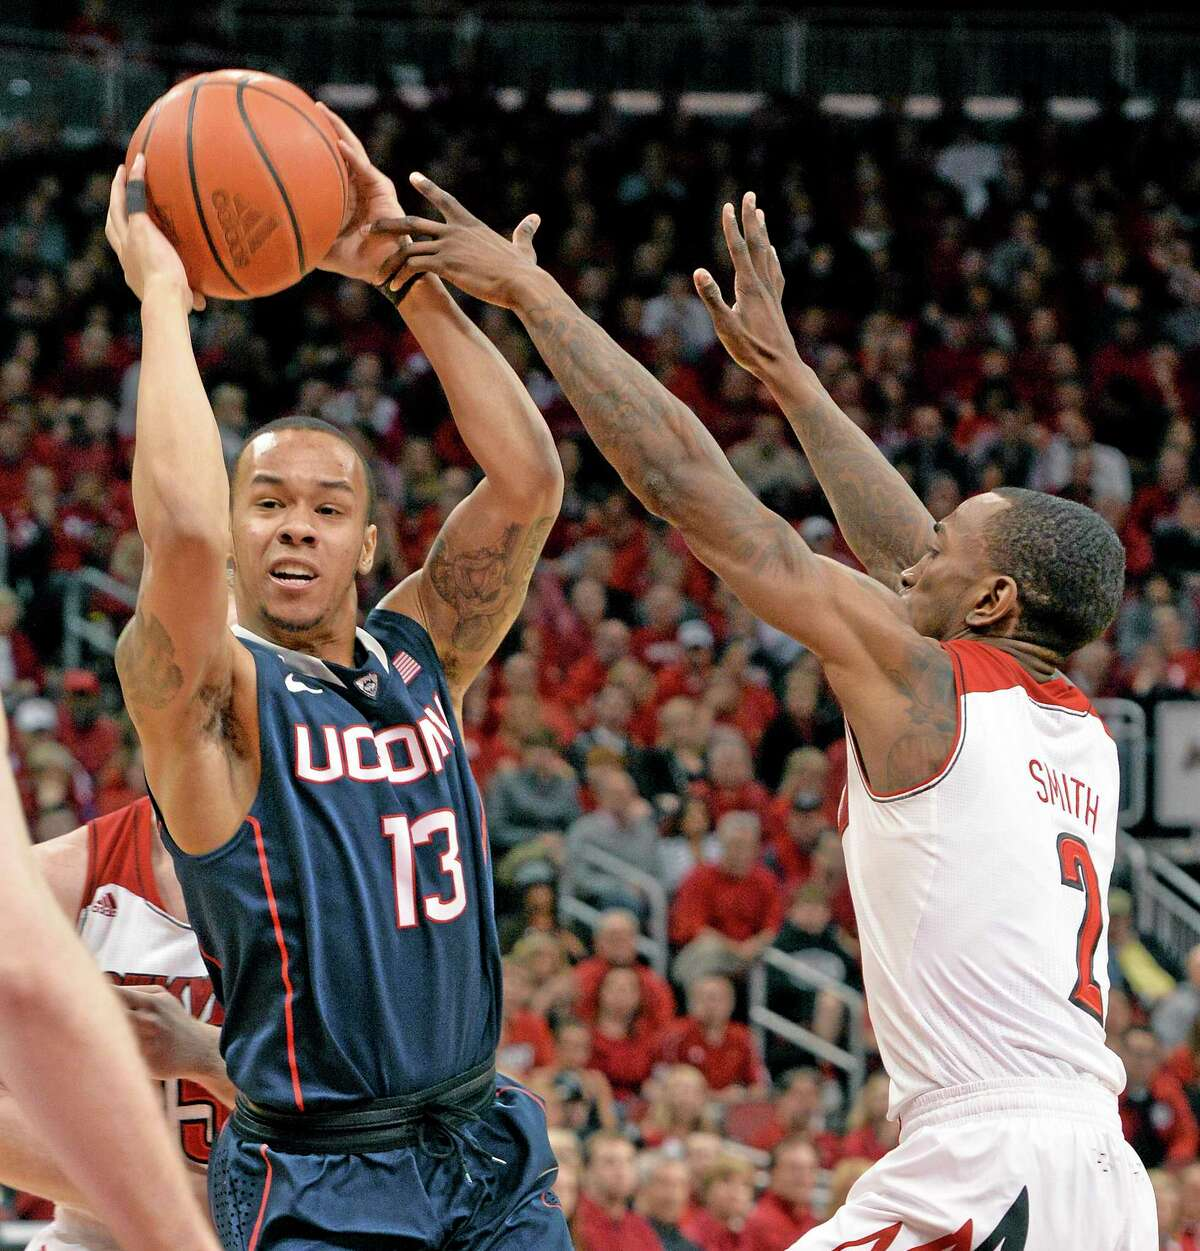 UConn's Shabazz Napier, left, and Louisville's Russ Smith are two of the best guards on two of the best teams in the American Athletic Conference. The AAC surpassed expectations in its inaugural season and boasts five teams ranked in the Top 25.